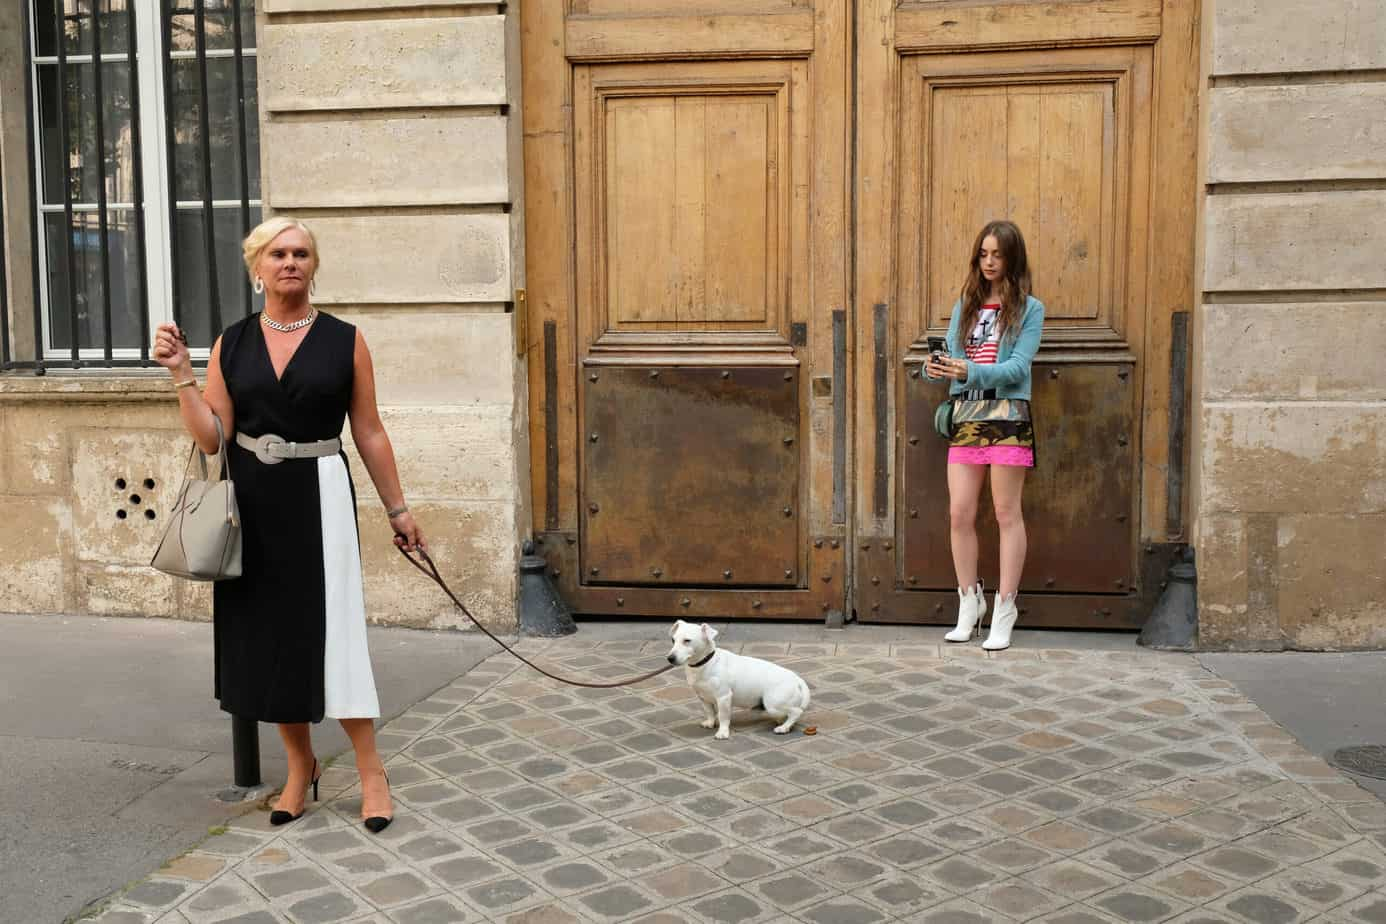 emily-in-paris-drinking-game-picture-of-dog